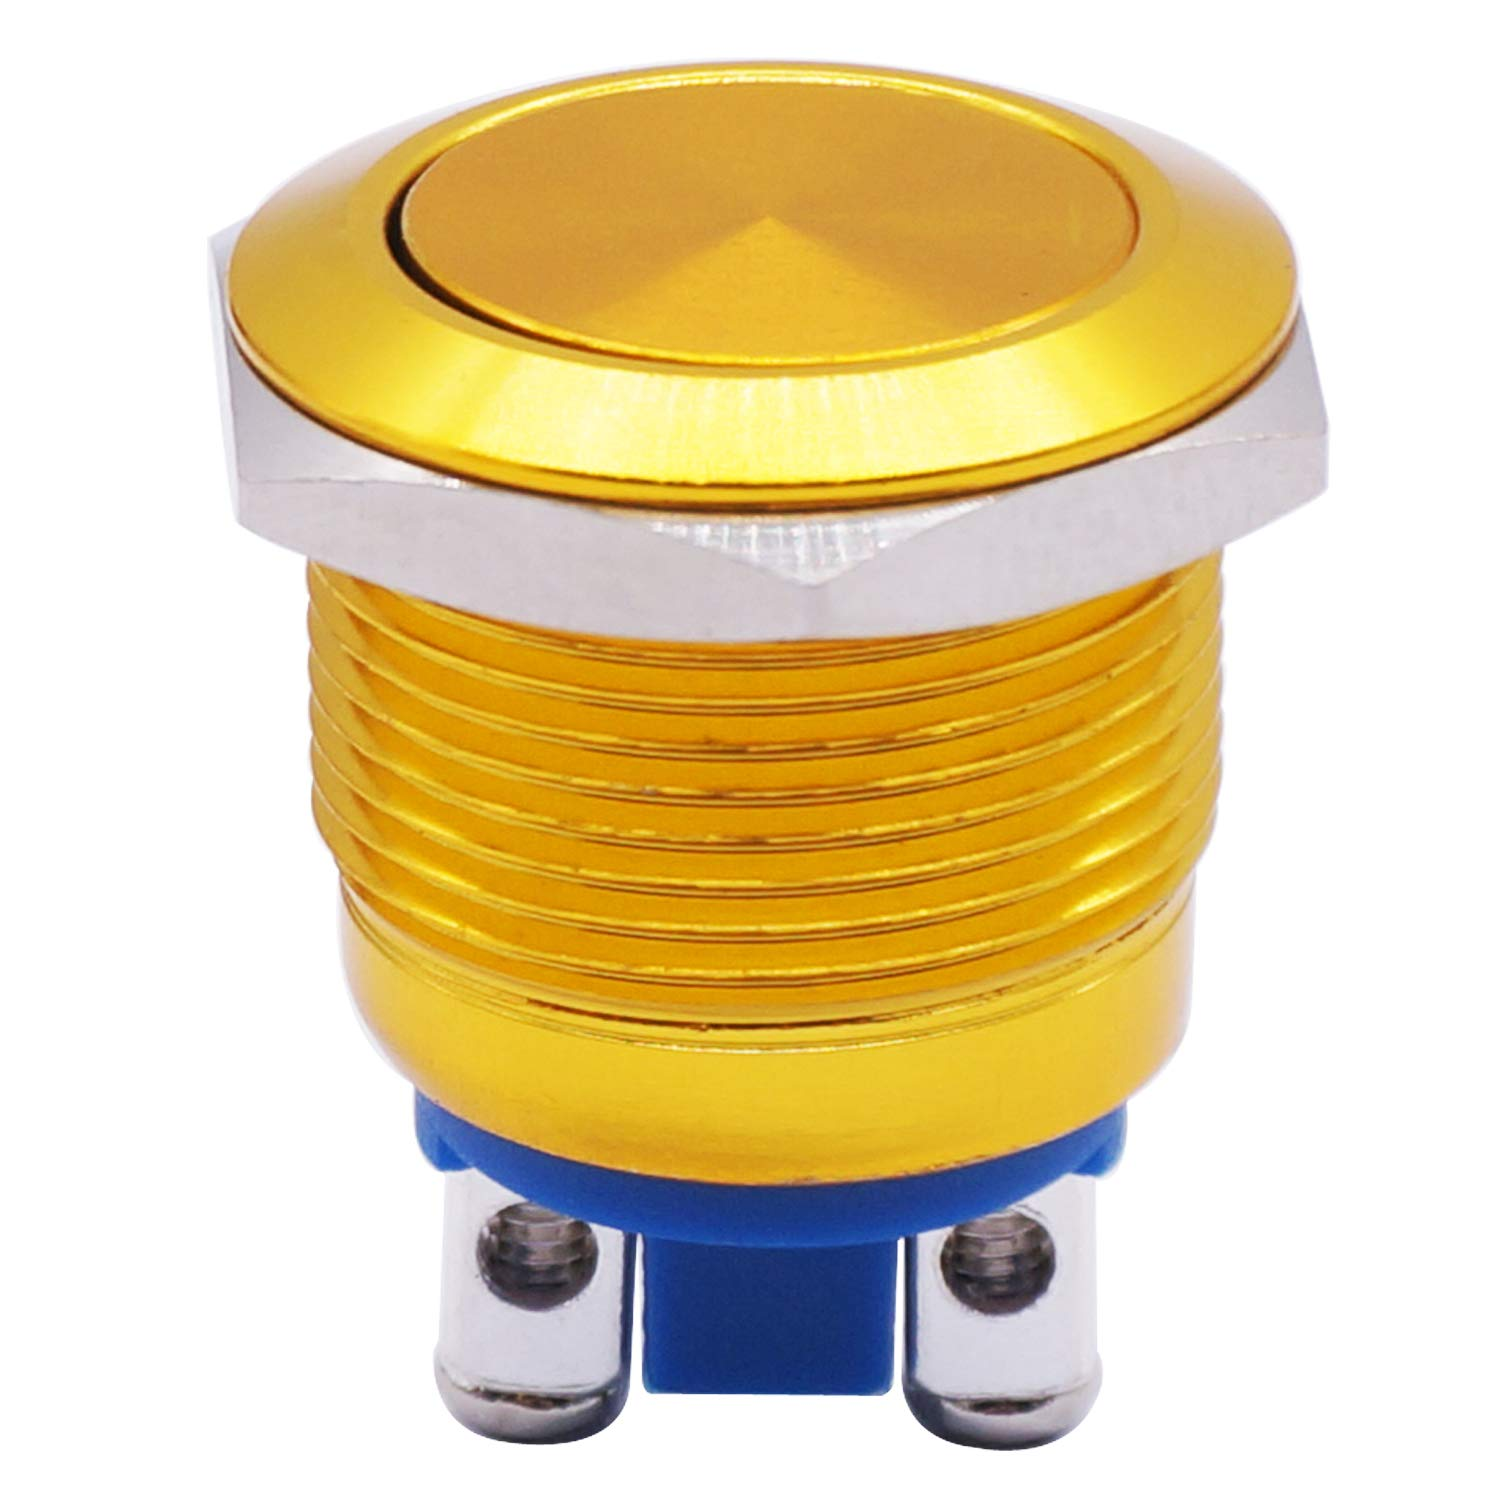 Twidec 19mm Waterproof Golden Metal Shell Momentary Flat Push Button Switch 3A//12~250V SPST 1NO Start Button for car Modification Switch (Quality Assurance for 1 Years)M-19-GLD-P